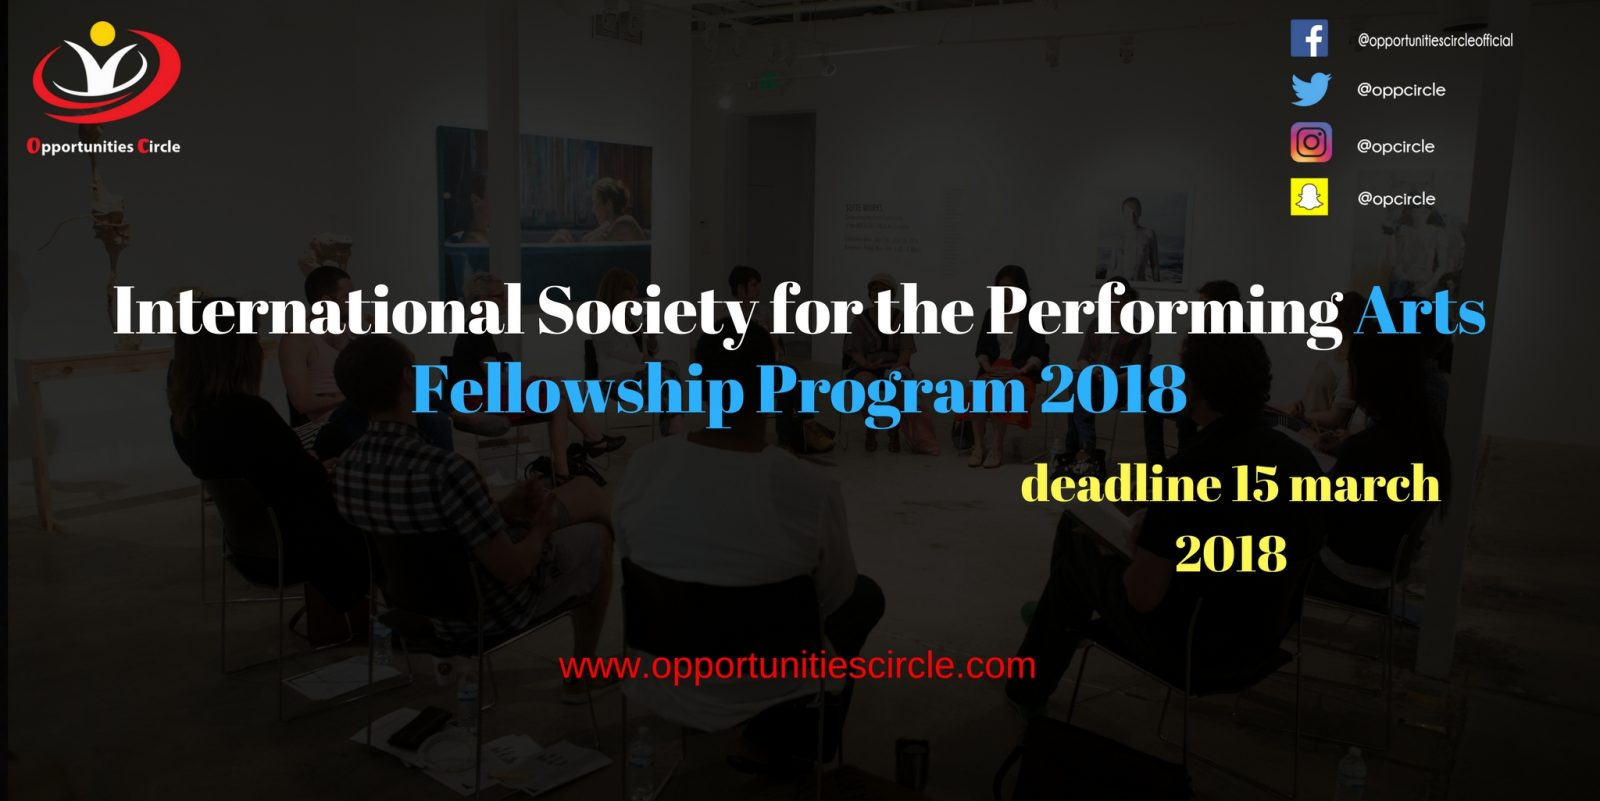 International Society for the Performing Arts Fellowship Program 2018 - International Society for the Performing Arts Fellowship Program 2018